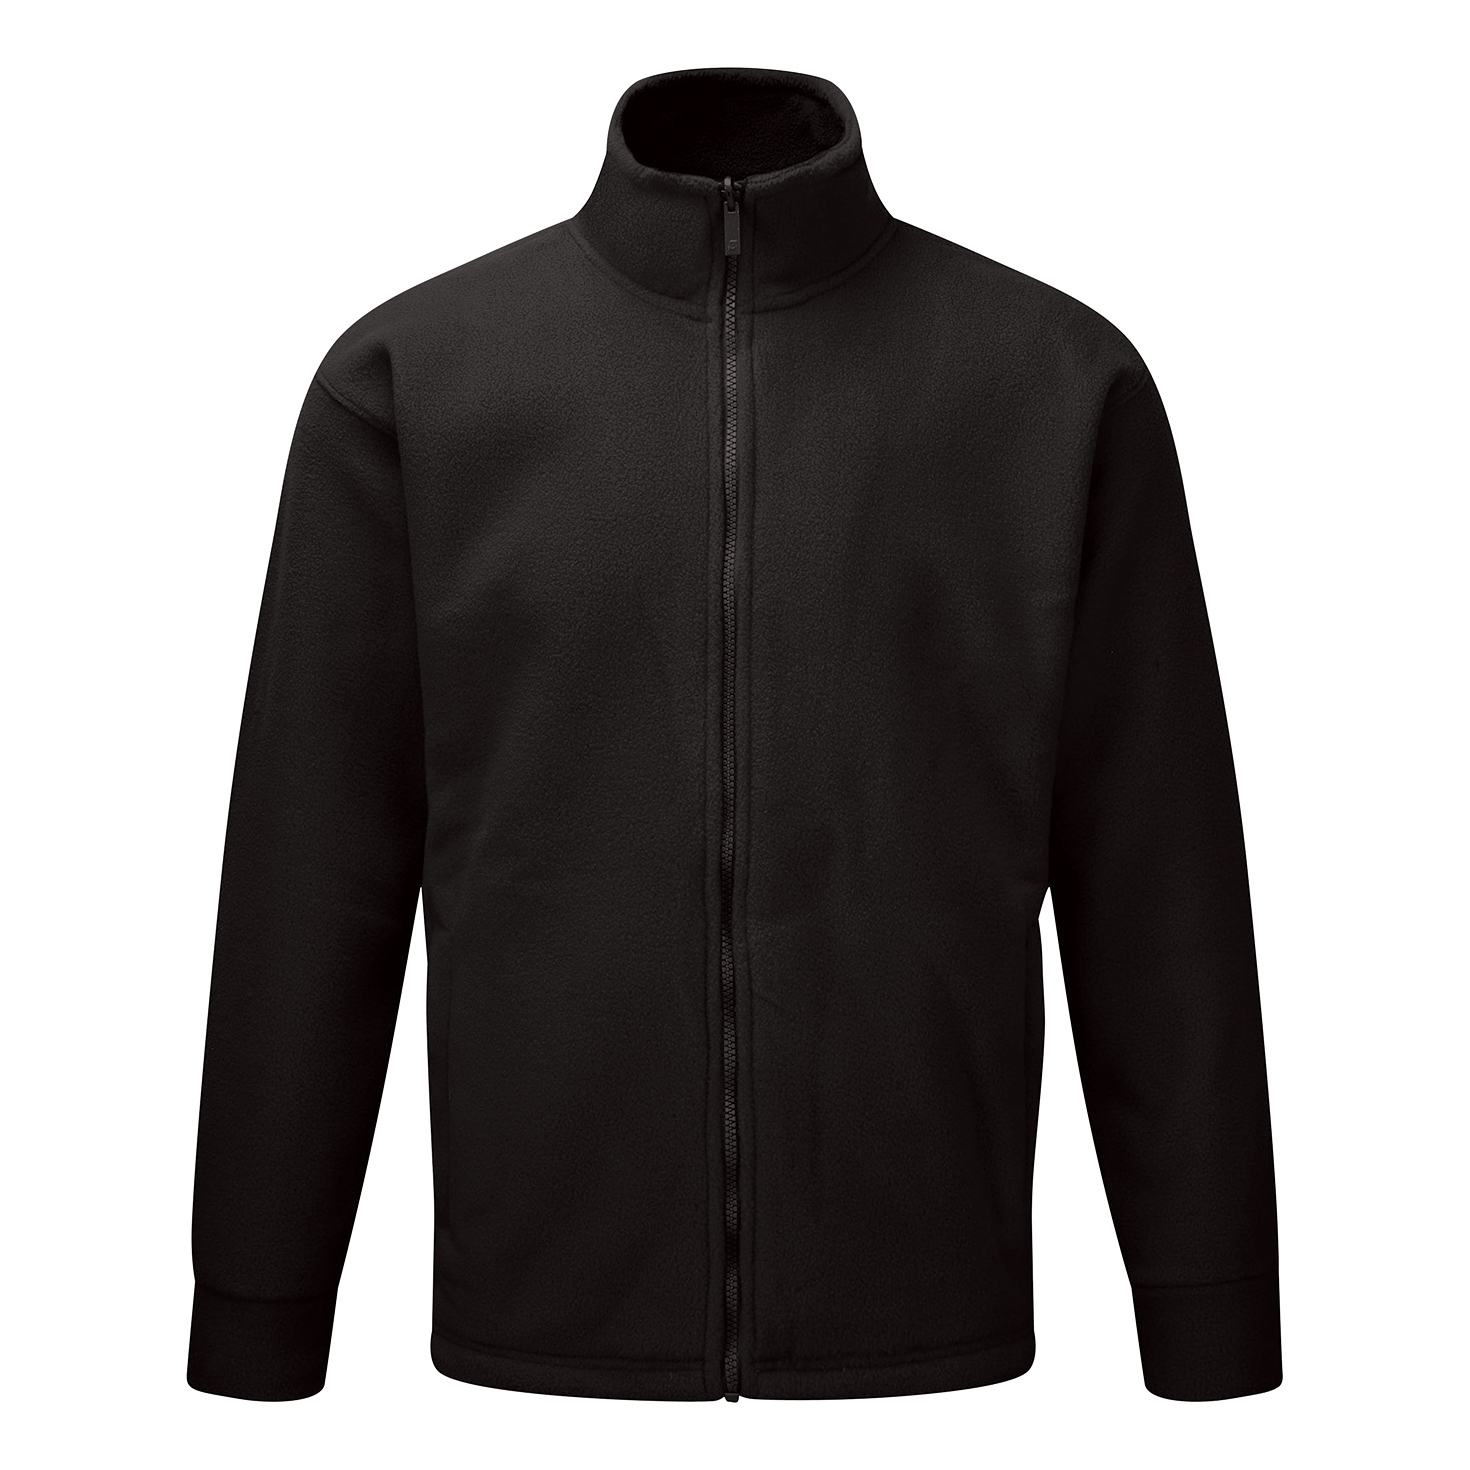 Basic Fleece Jacket Elasticated Cuffs and Full Zip Front XL Black 1-3 Days Lead Time